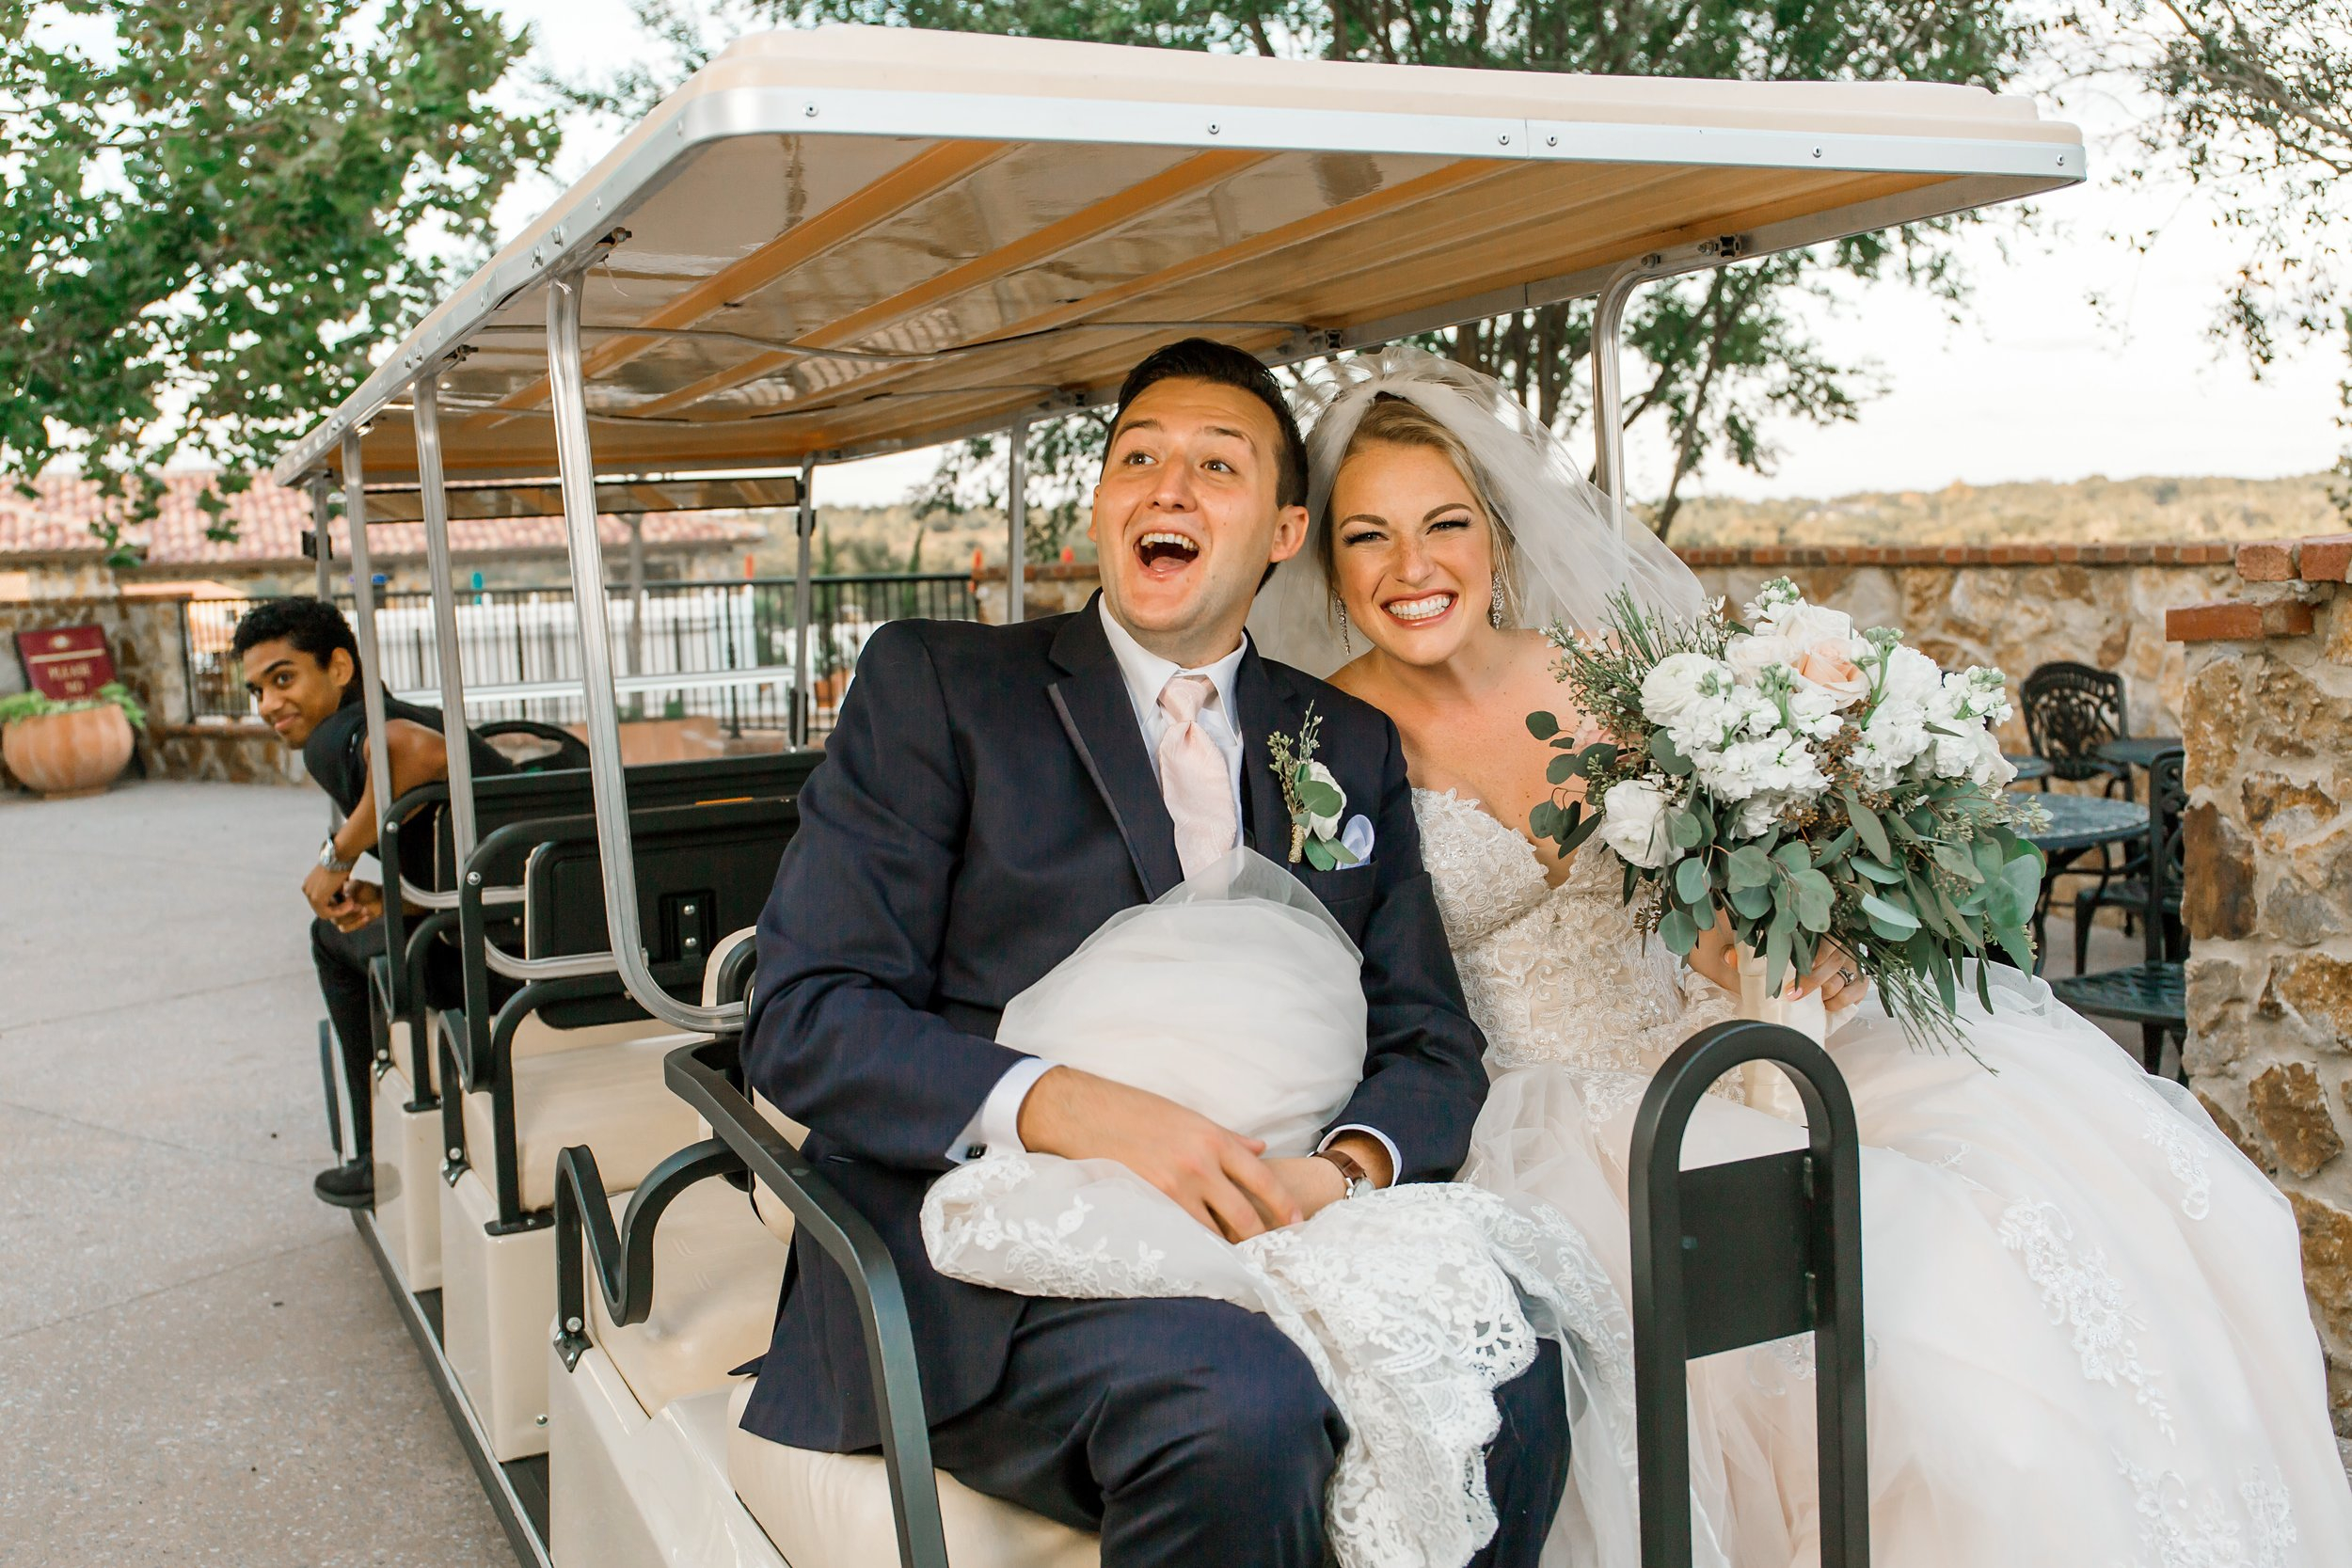 Wedding portraits at Bella Collina Florida.jpg.jpg